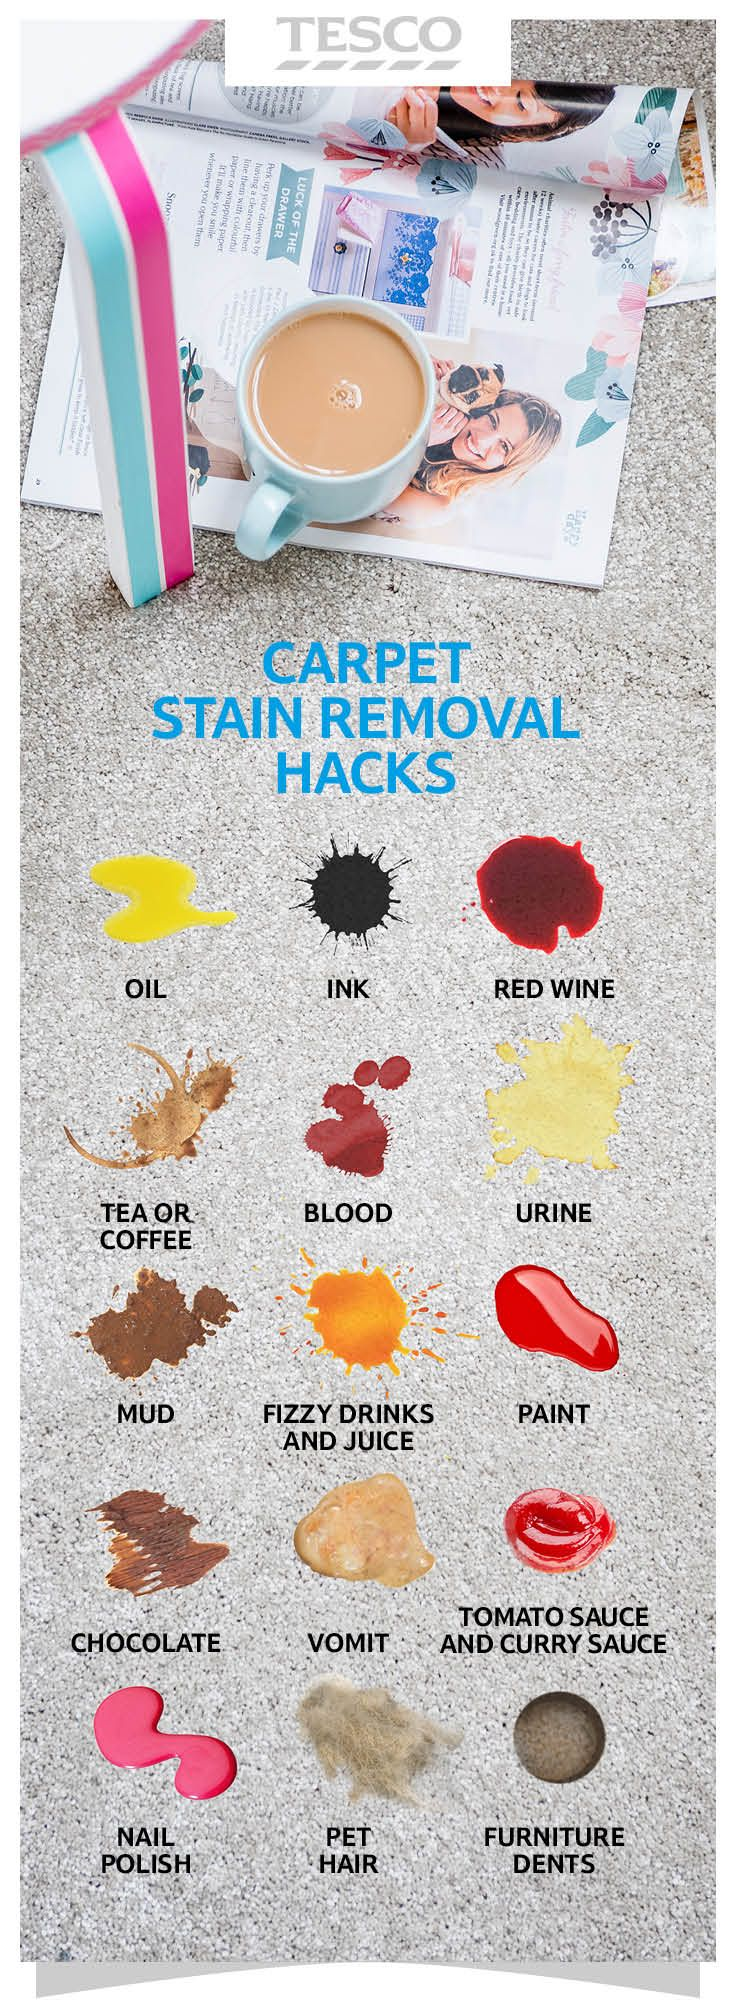 Quick carpet cleaning stain removal tips life hacks